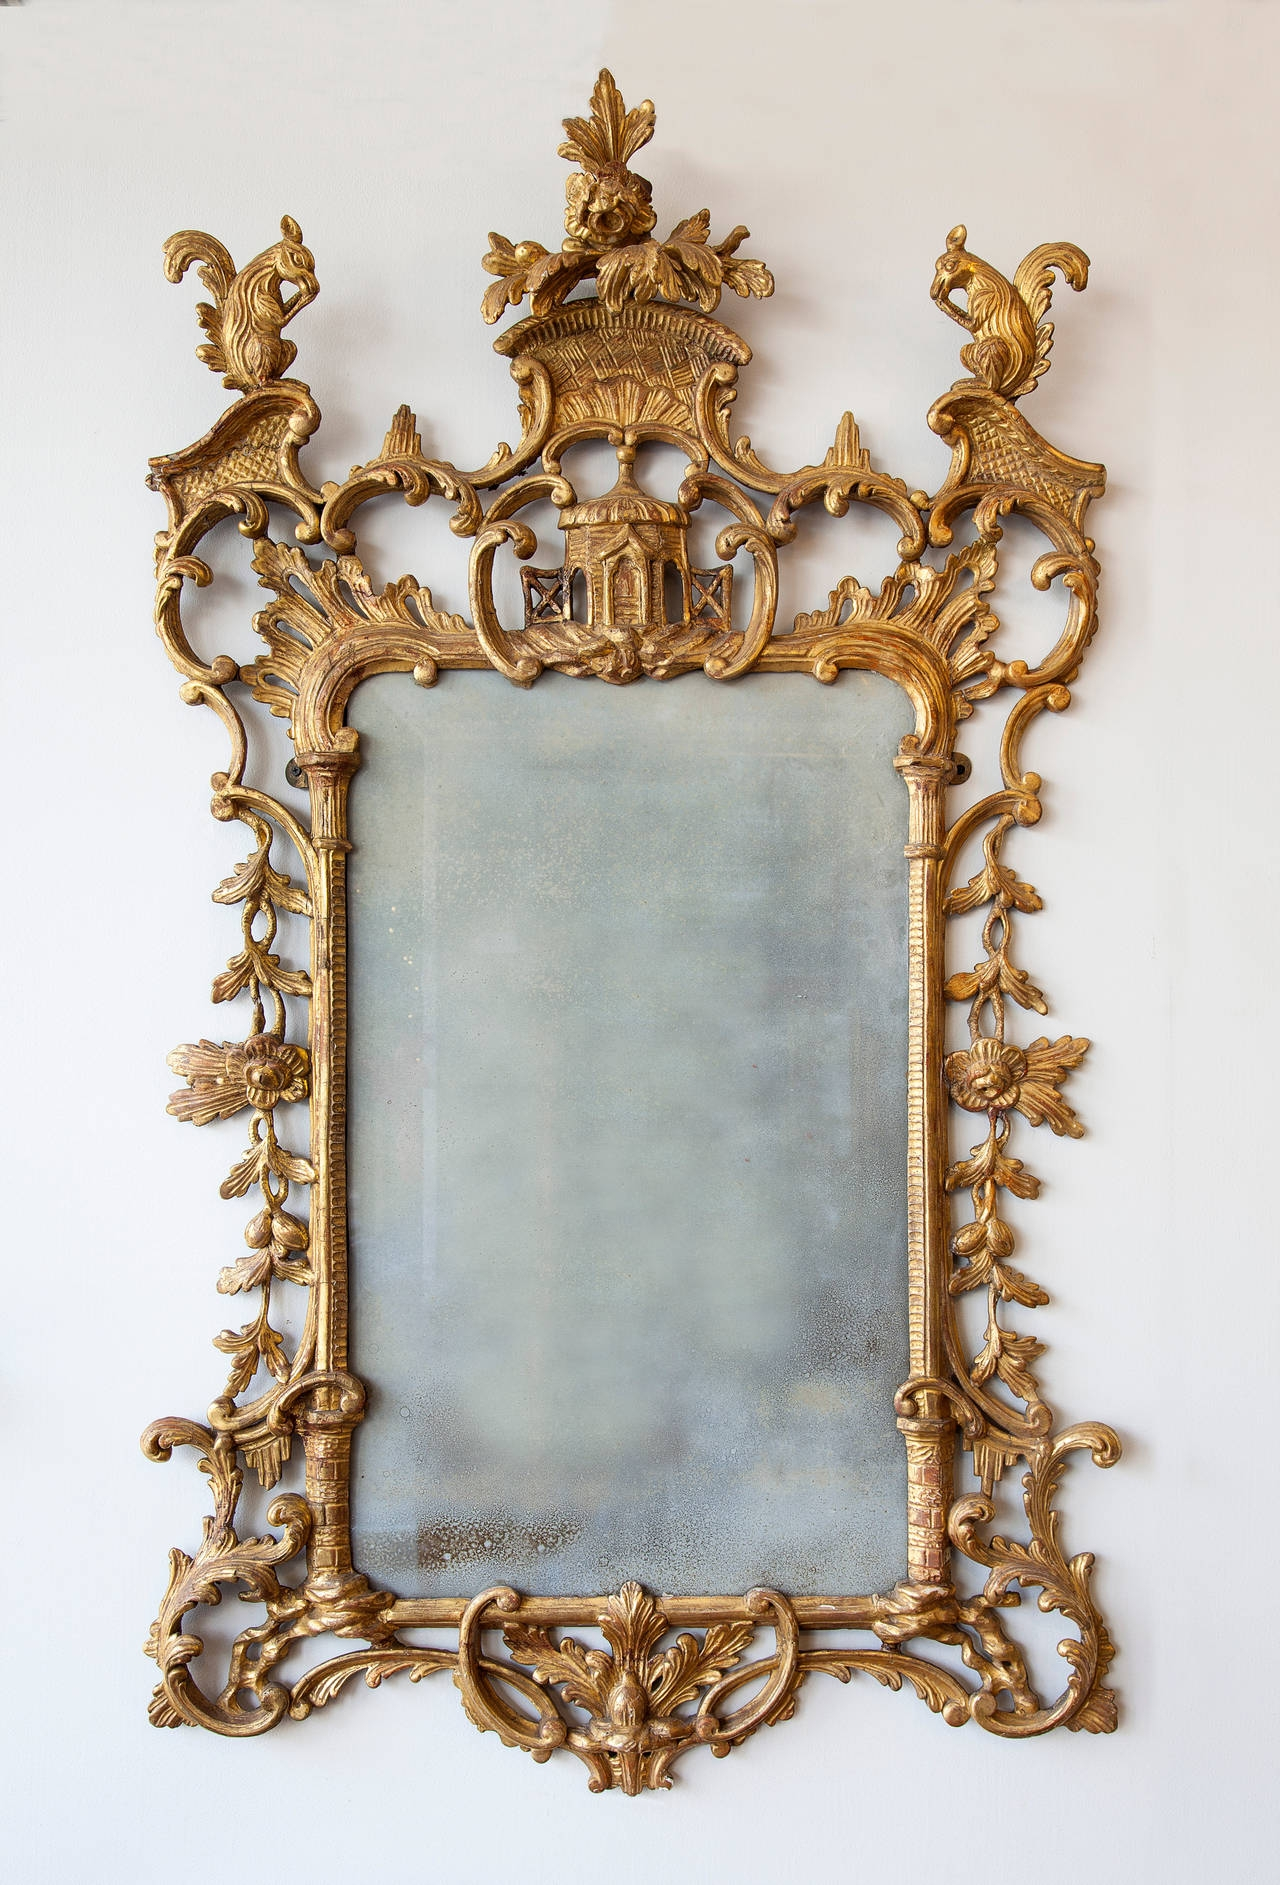 Decorative Vintage Mirrors For Sale 28×22 Baroque Gold Mirror In Baroque Gold Mirror (Image 9 of 15)